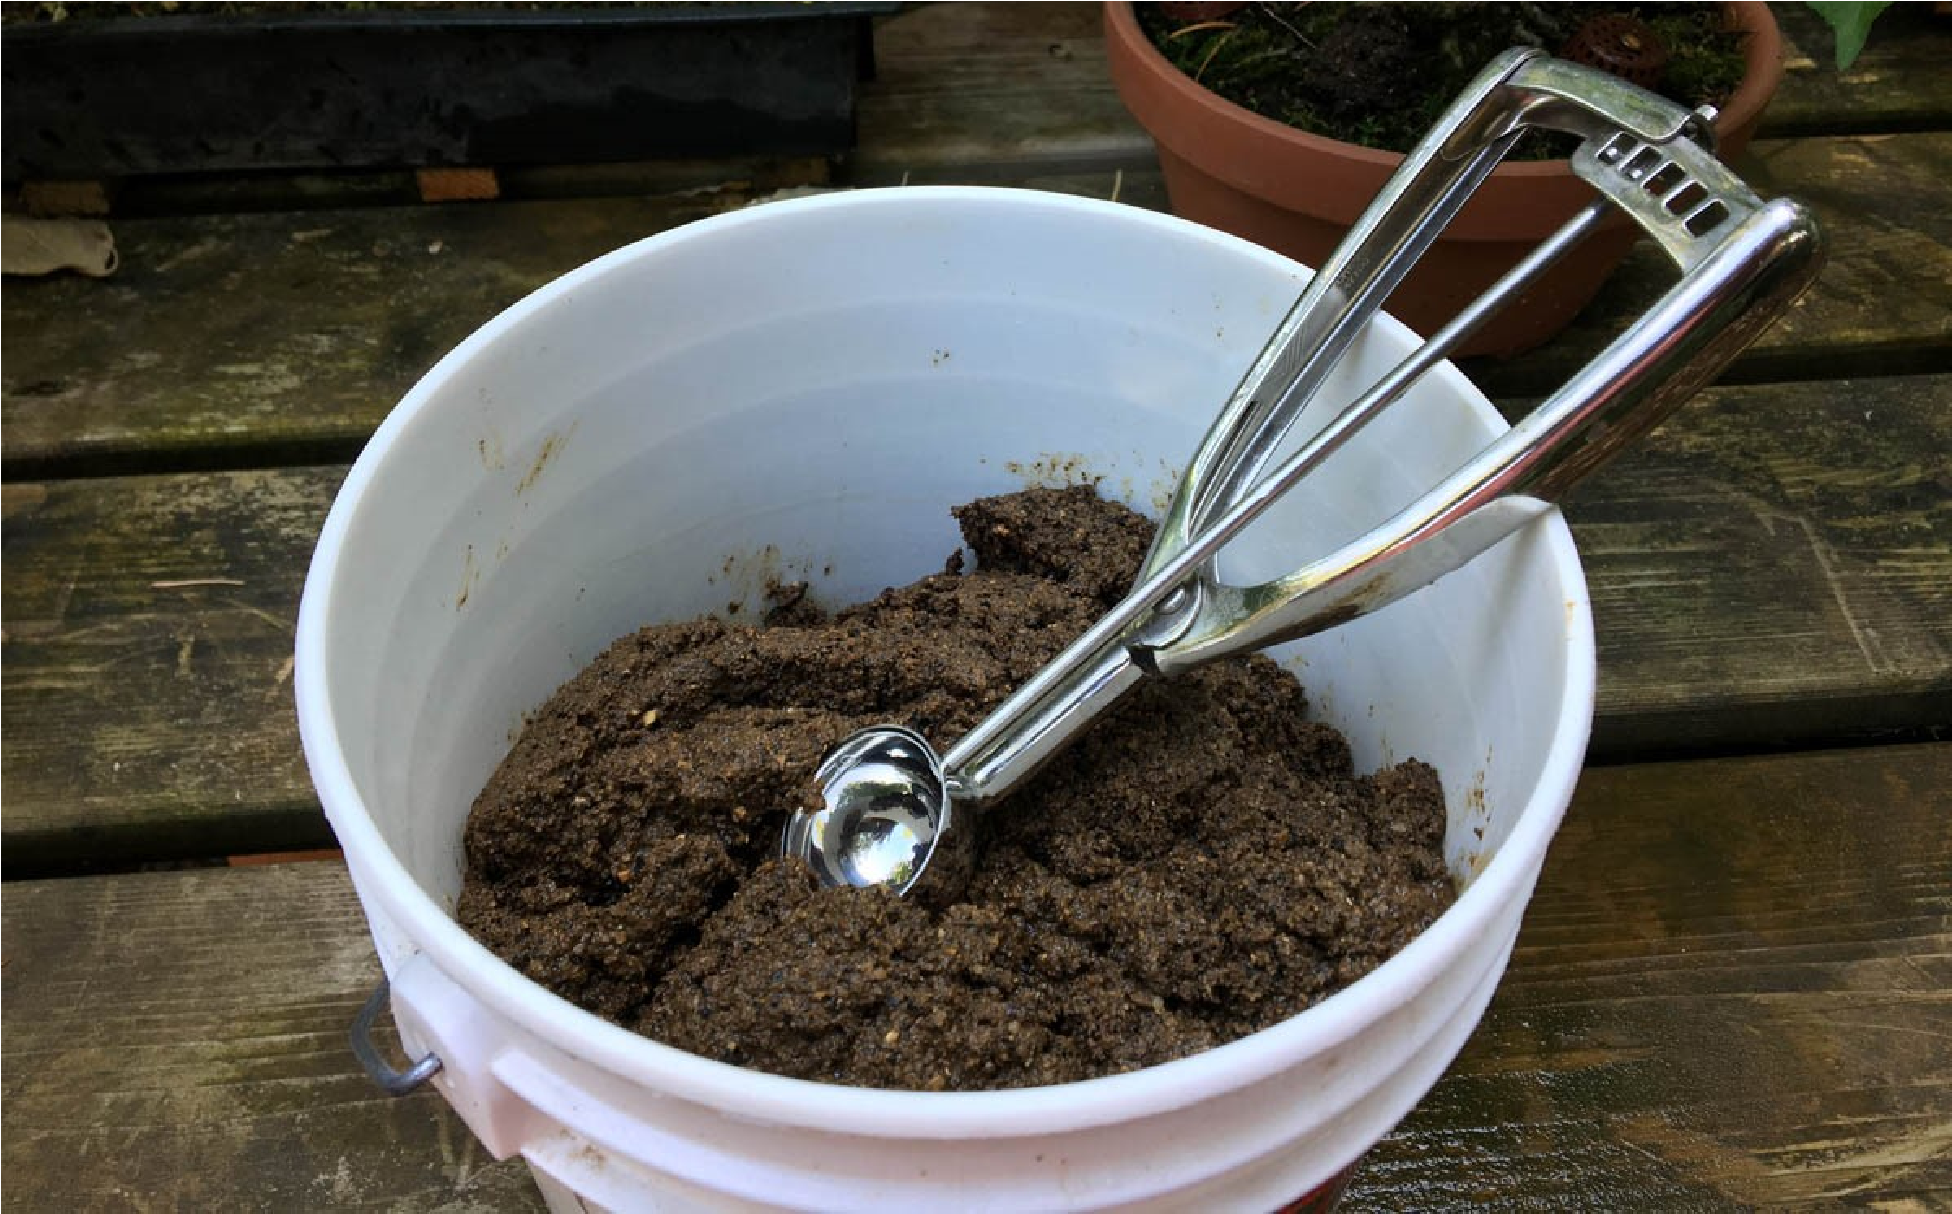 Bucket of homemade Poo ready for placement.